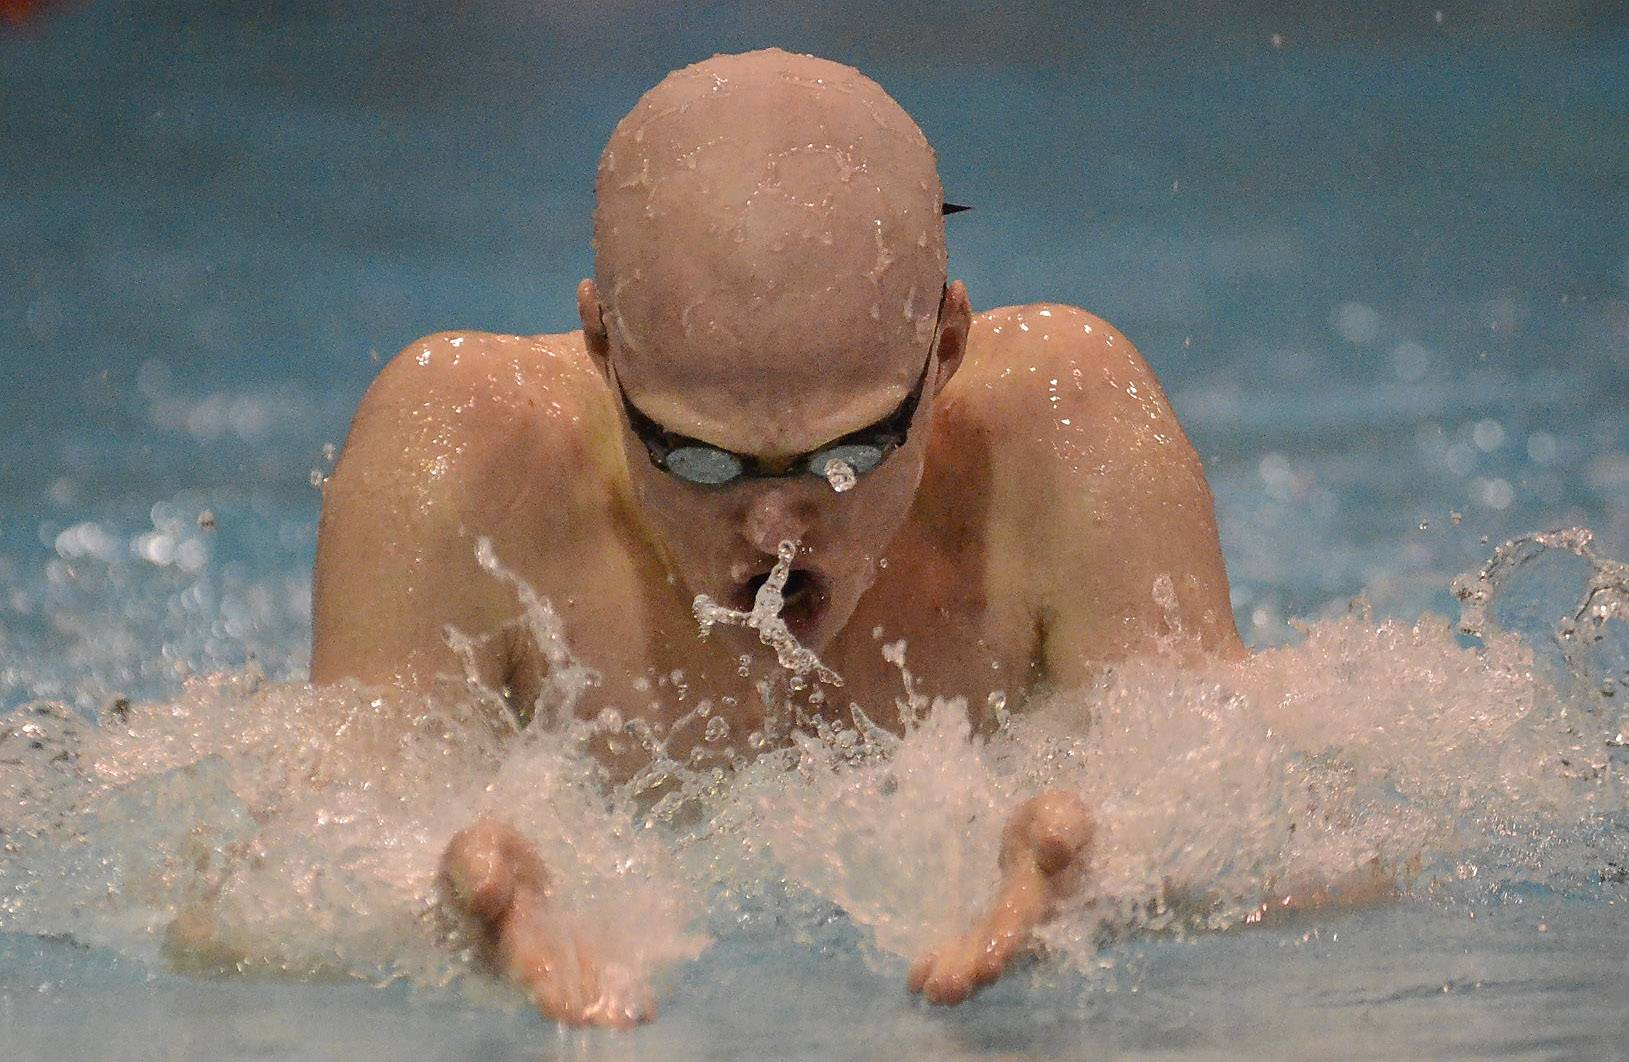 Jake Barson of Rolling Meadows qualifies ninth in the 100 breaststroke during the boys swimming state meet prelims Friday at Evanston Township High School.